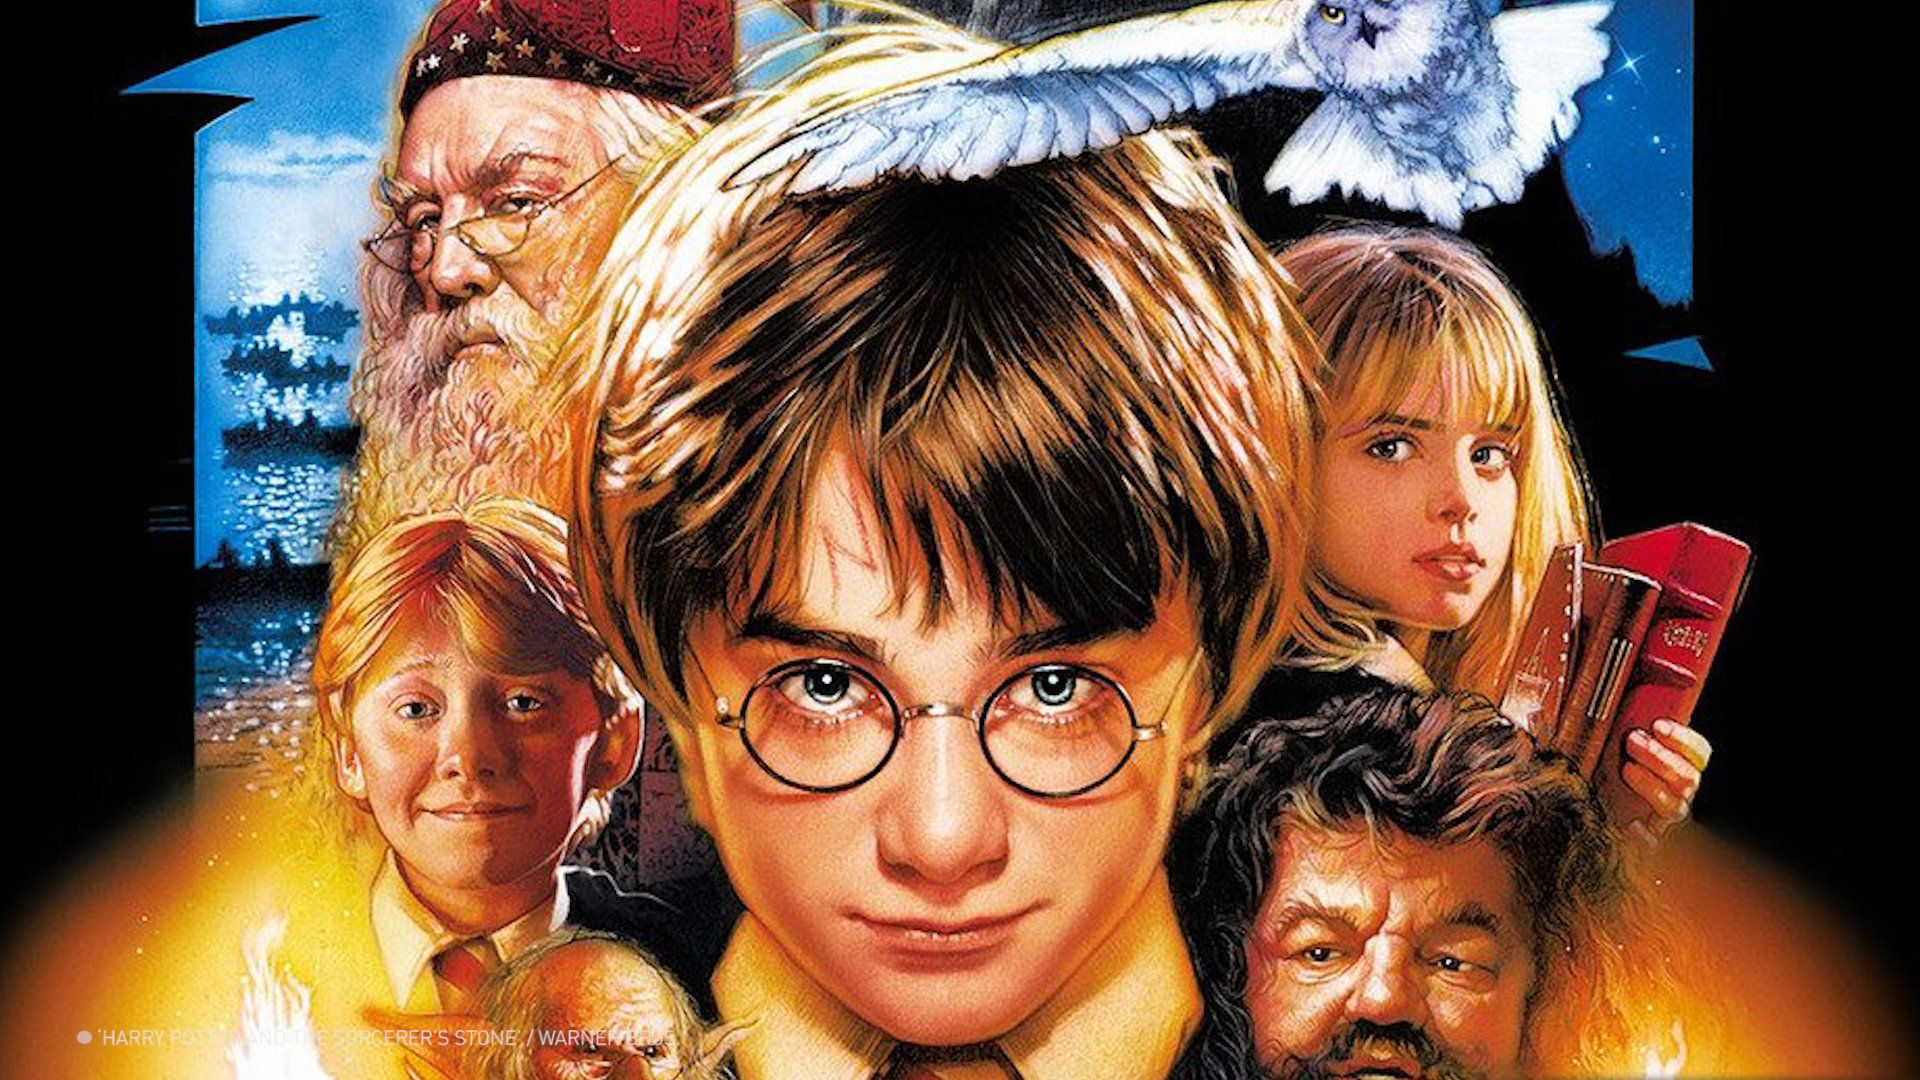 There are quite a few differences between the Harry Potter books and films